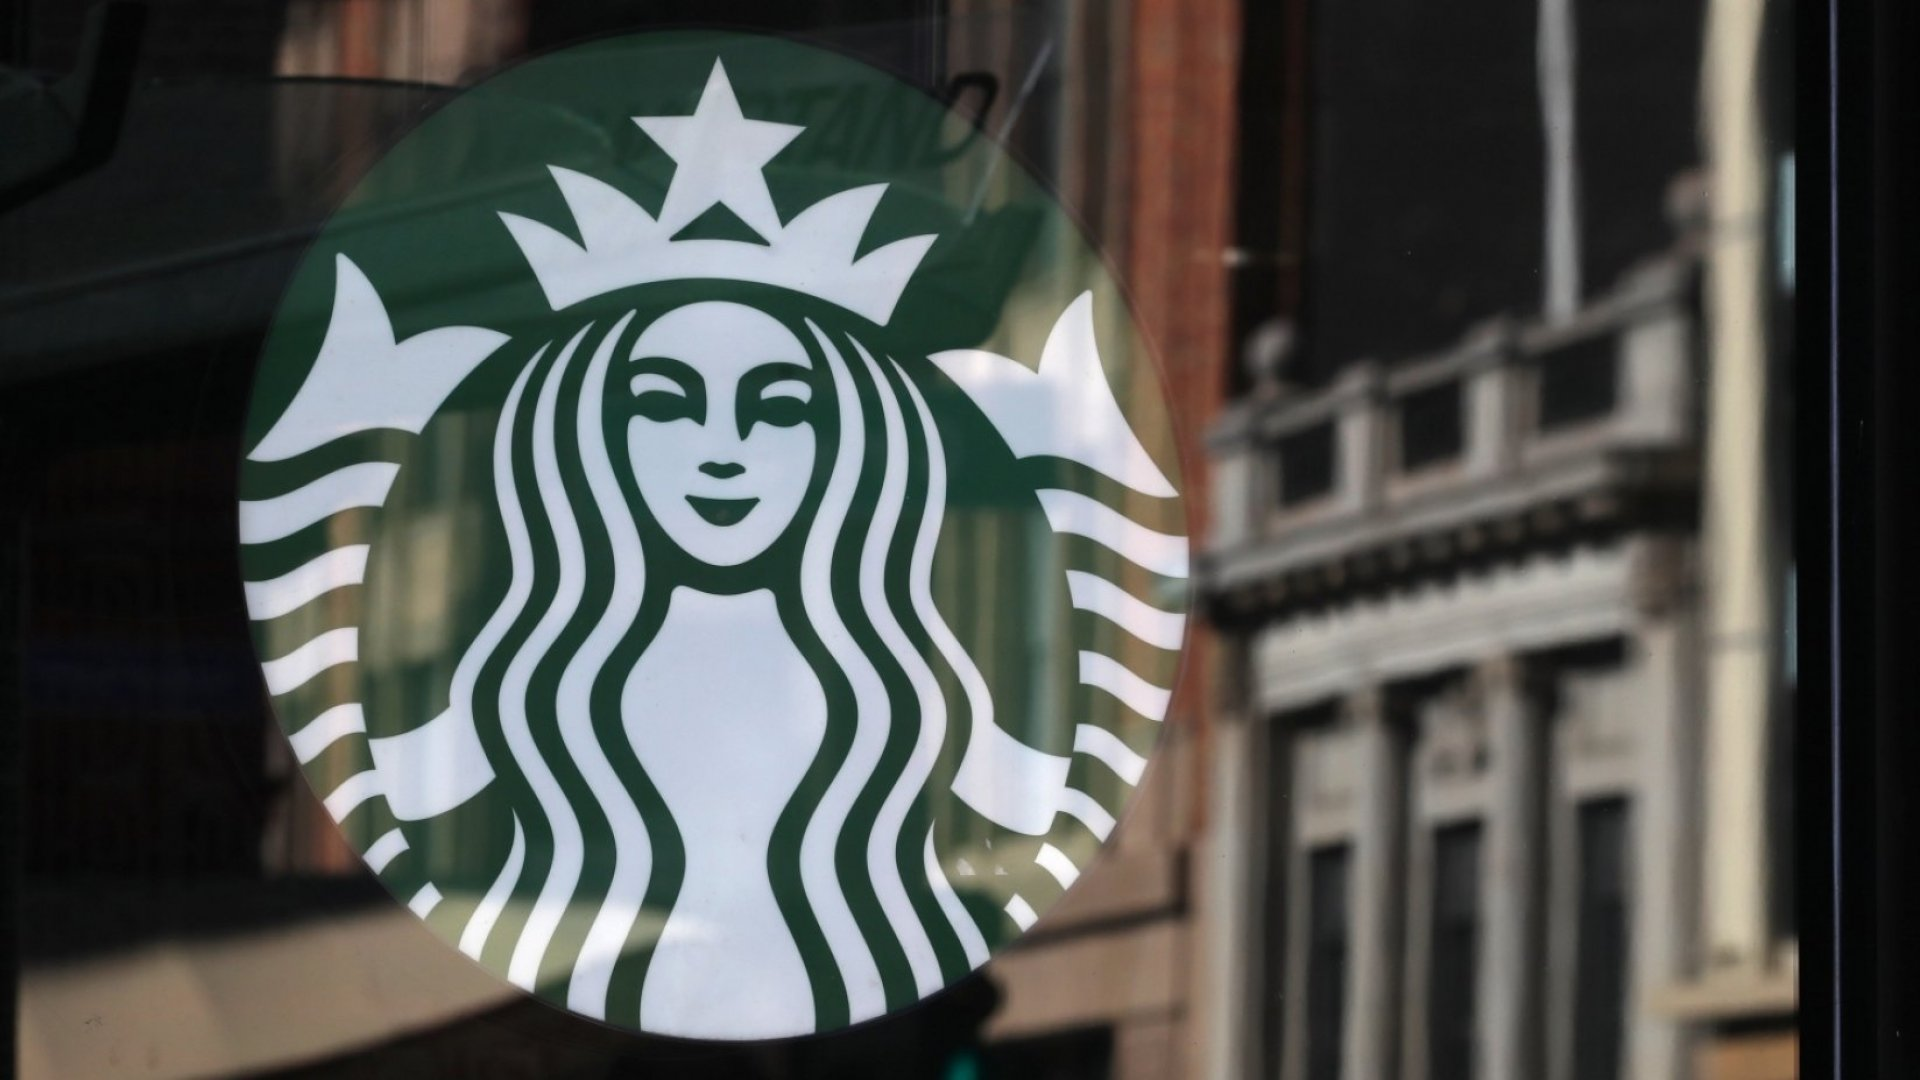 Starbucks Just Stumbled Into a Disturbing Controversy. Was It Preventable?